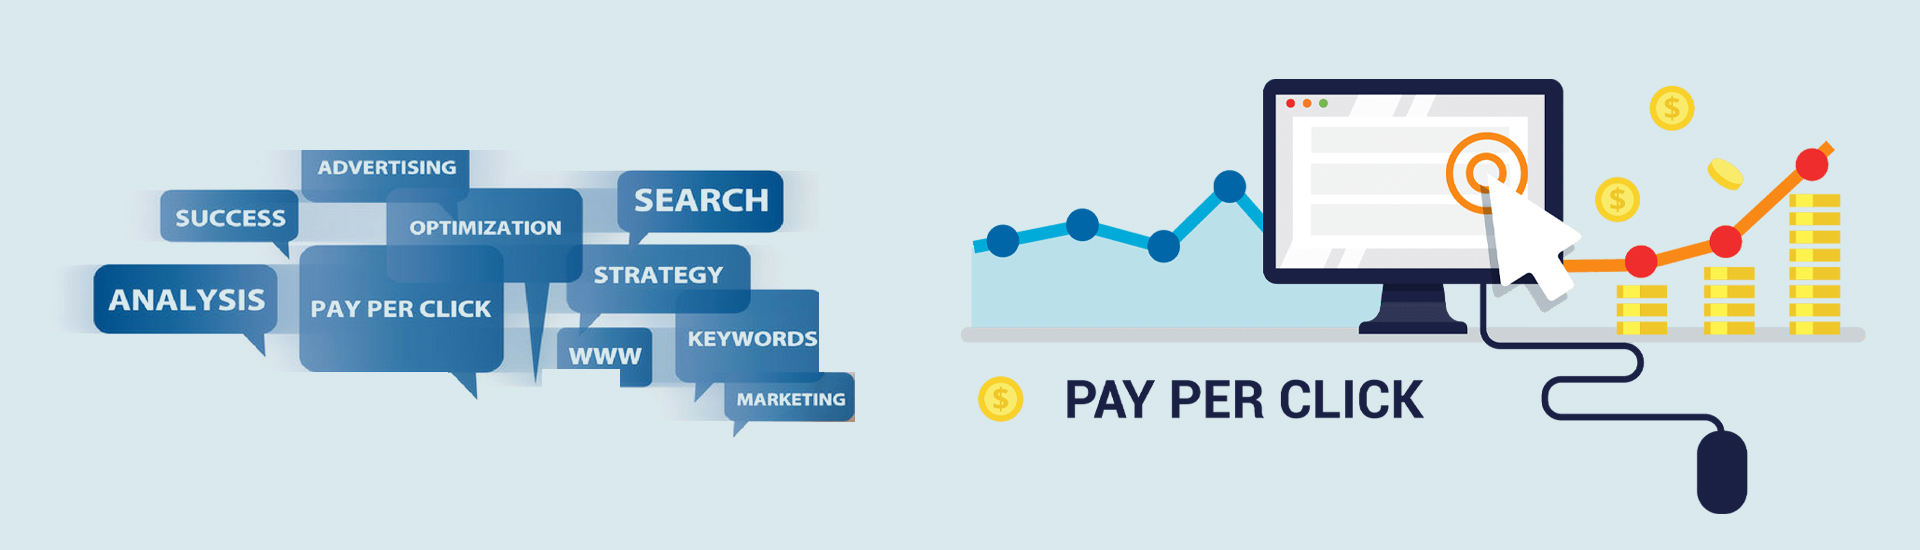 PPC Services from Pay Per Click Company